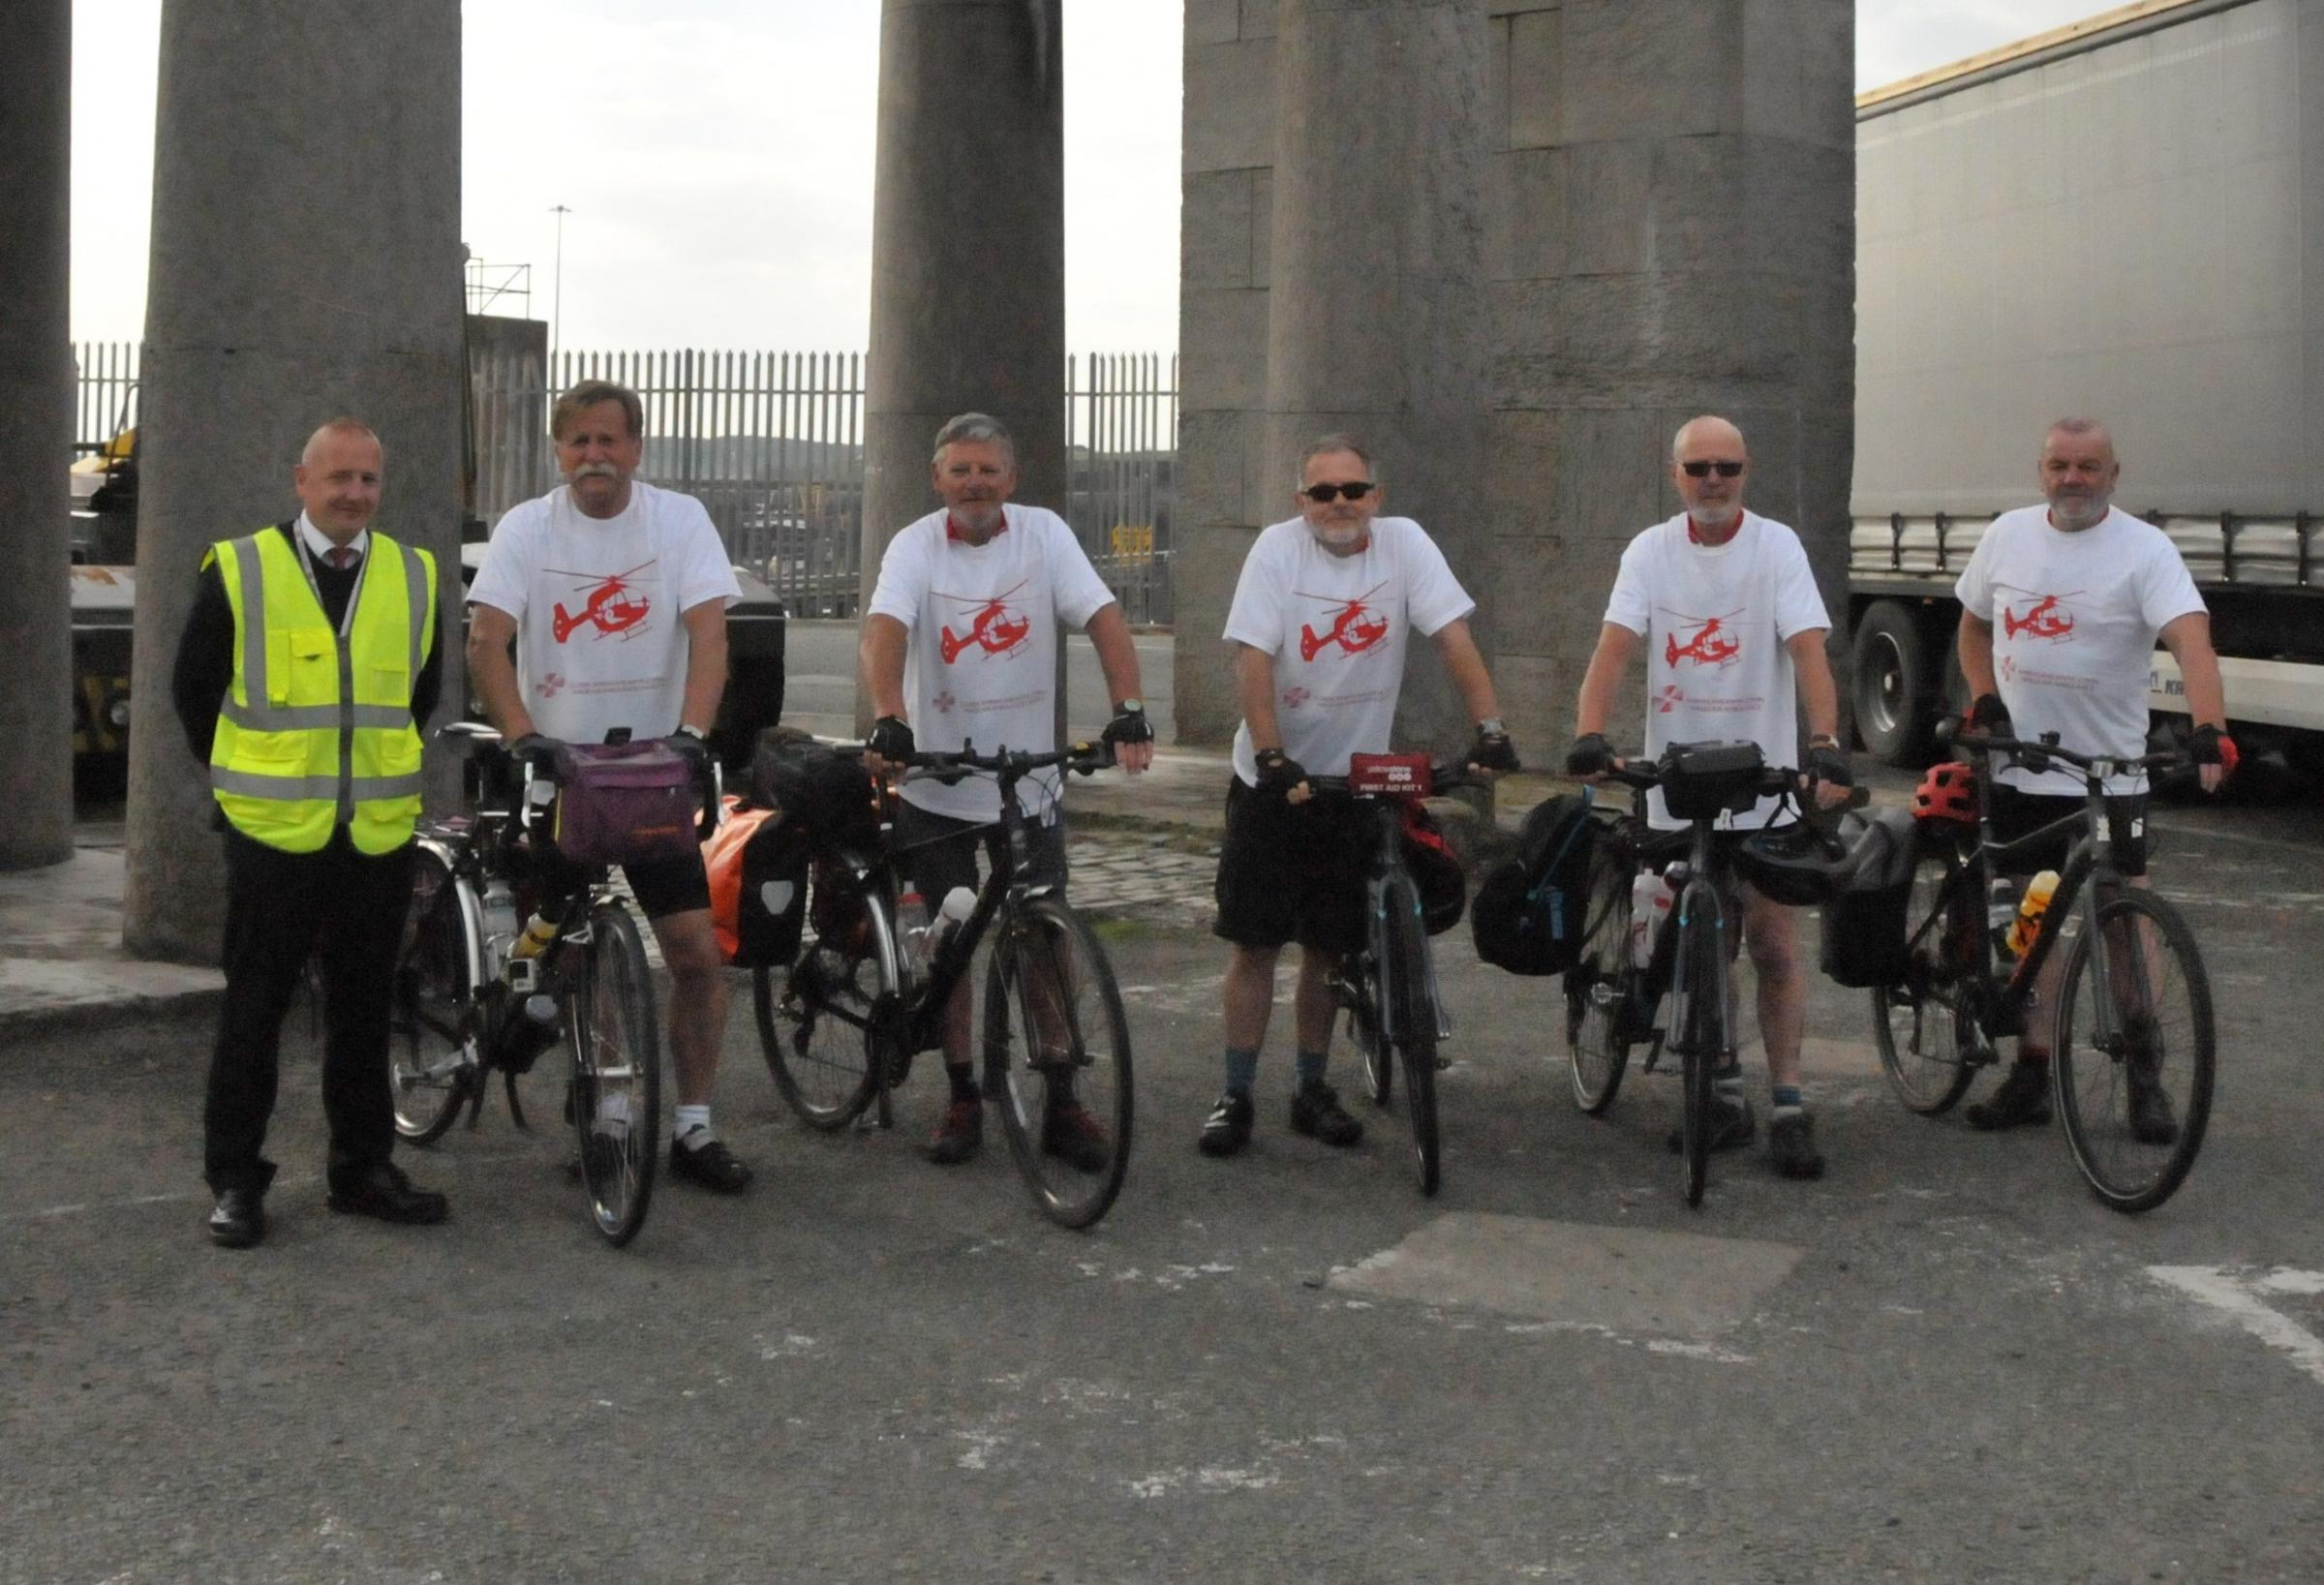 The Beardy Bikers preparing to set off from the Admiralty Arch in Holyhead.